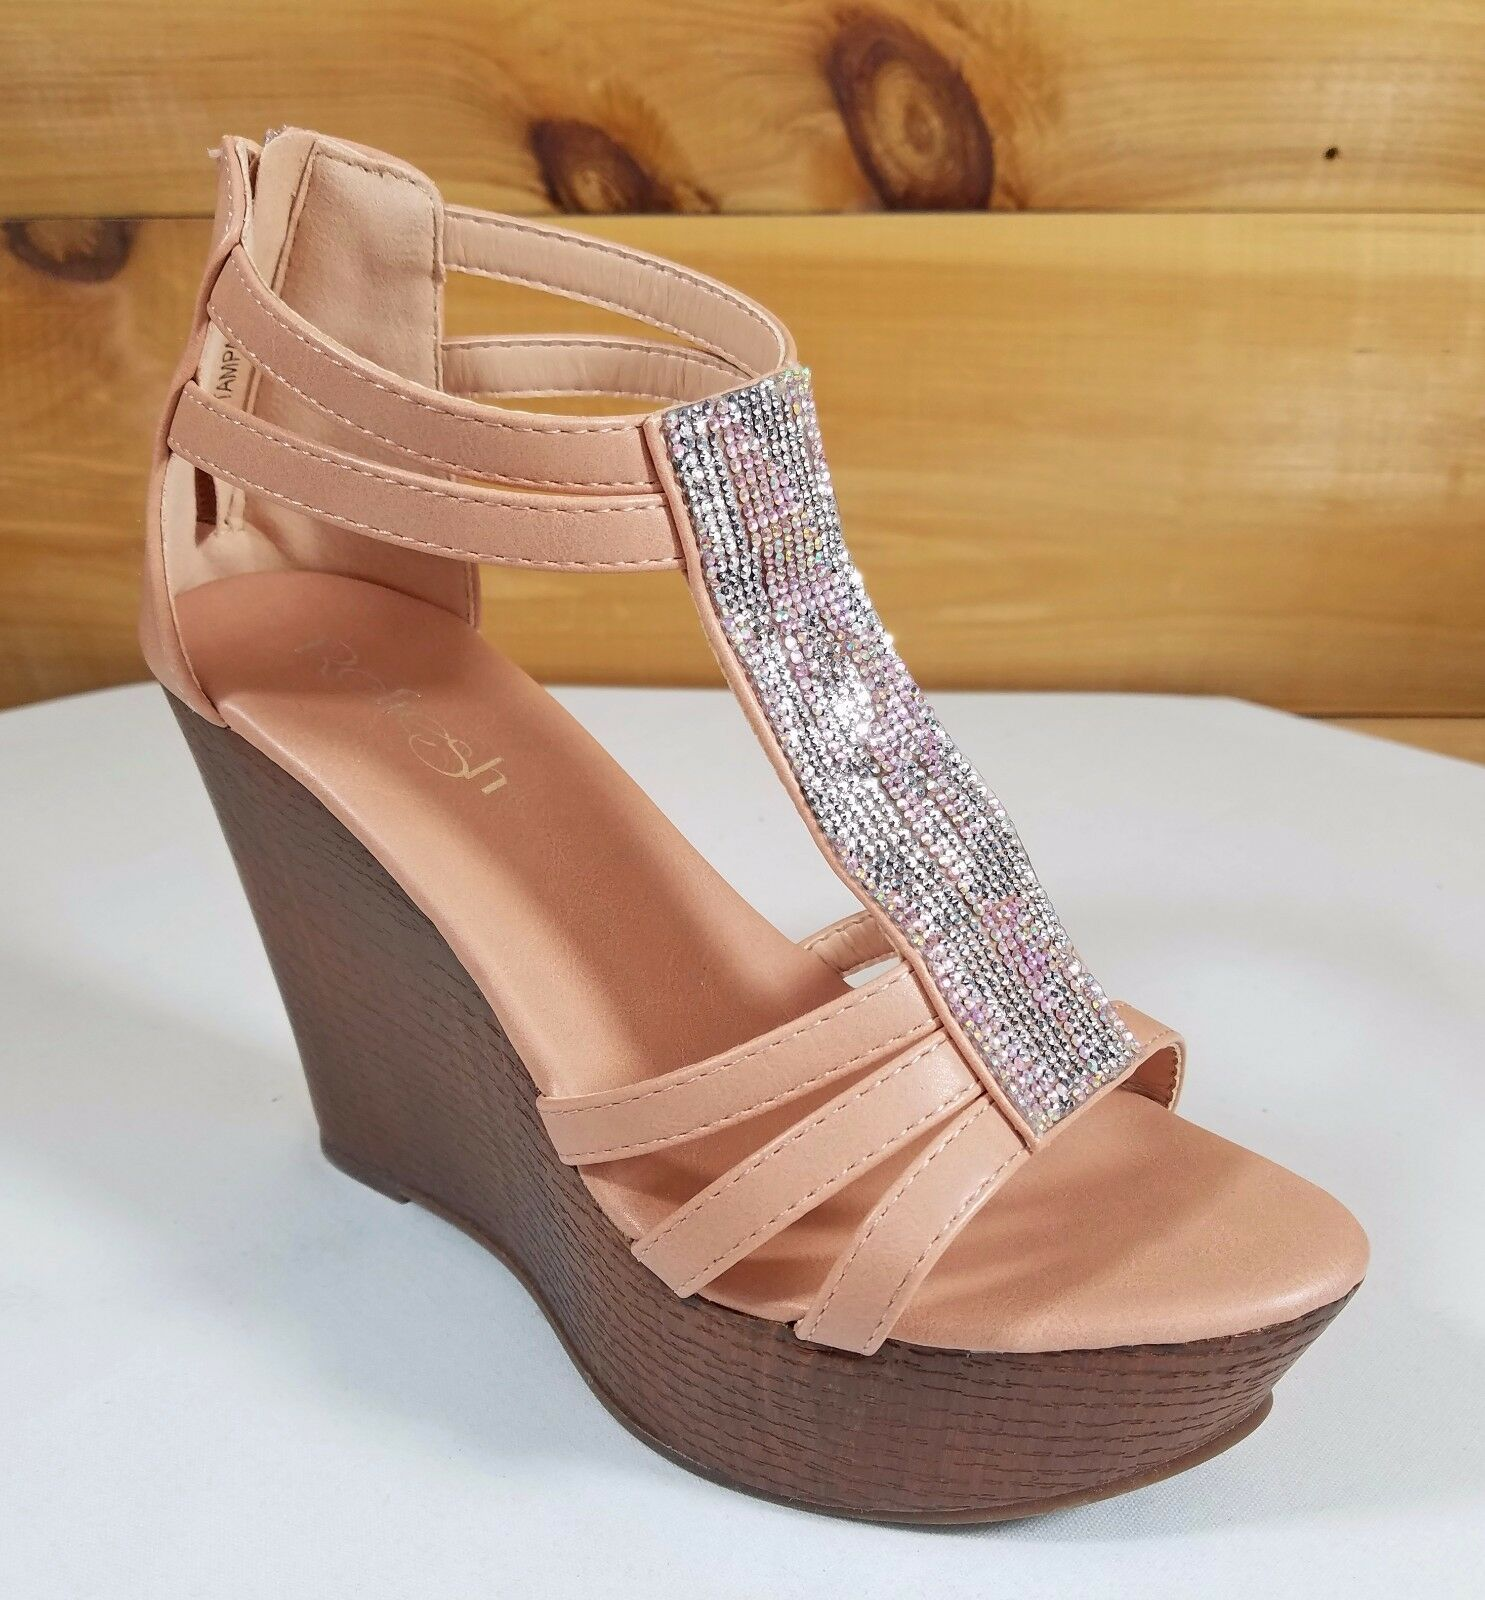 Refresh Blush FX Wood Shoes Sandals High Heel Wedge Shoes Wood 4.5